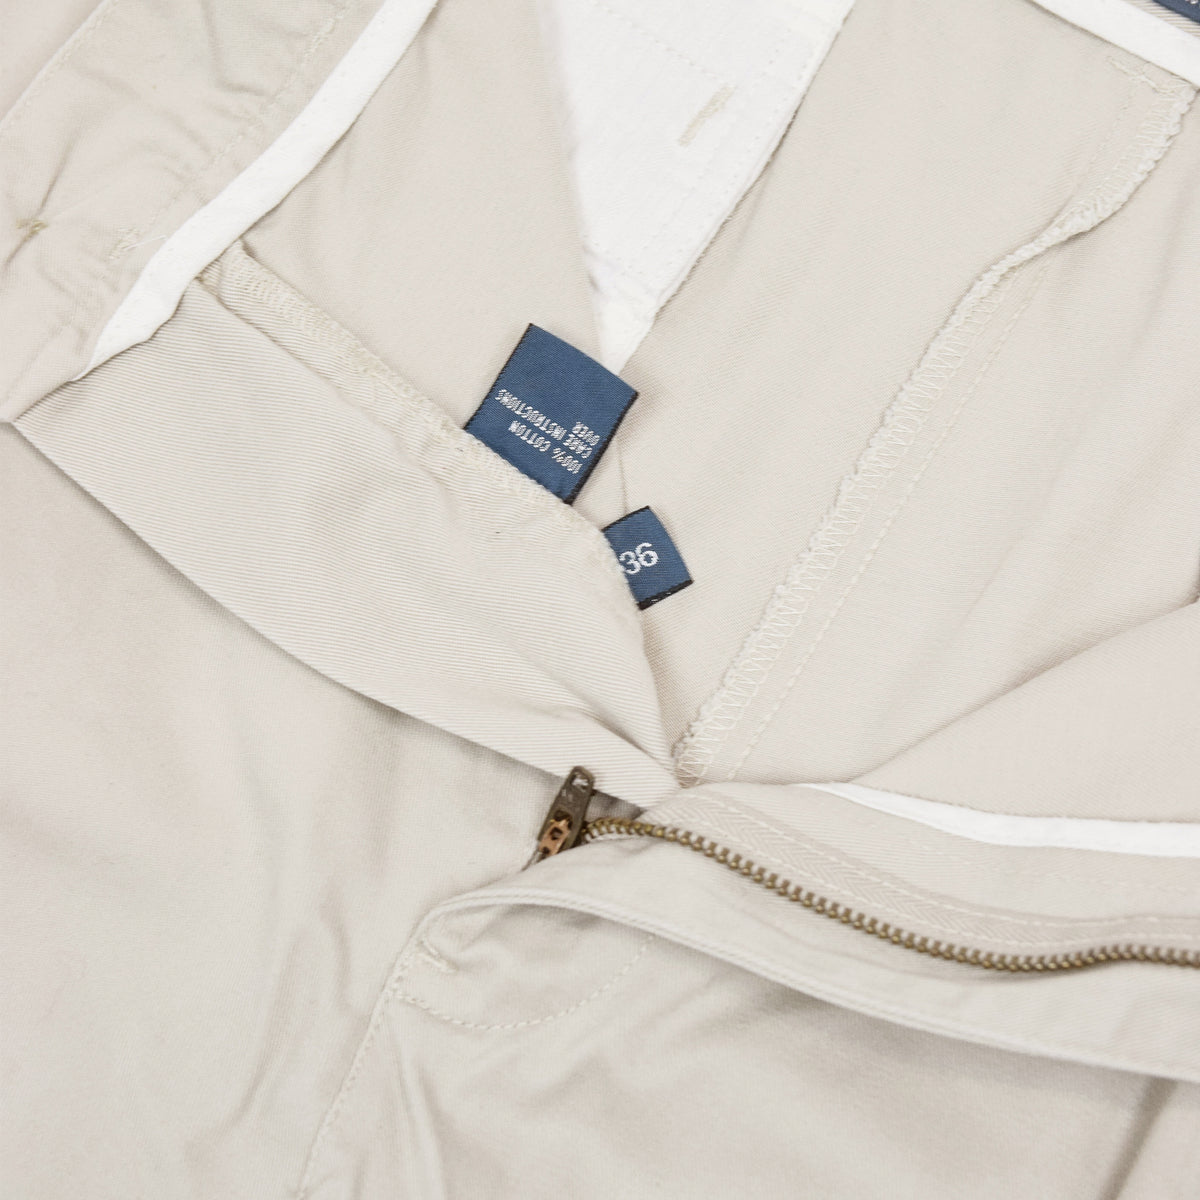 Vintage 90s Polo Ralph Lauren Tyler Cotton Double Pleated Chino Shorts 34 W internal label